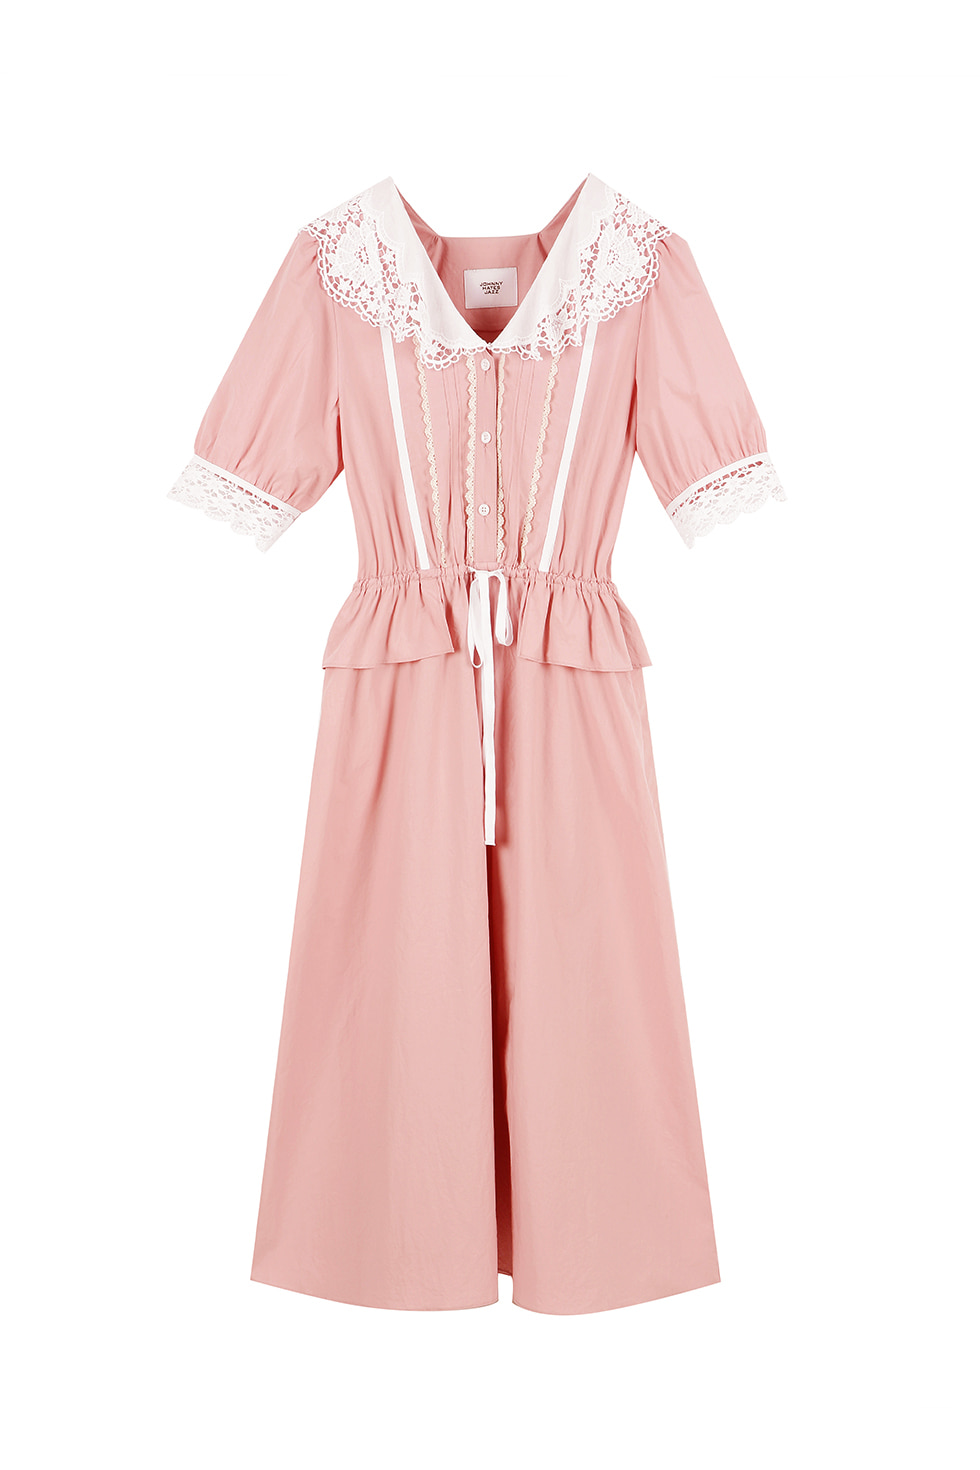 LACE RUFFLE COTTON DRESS - PINK